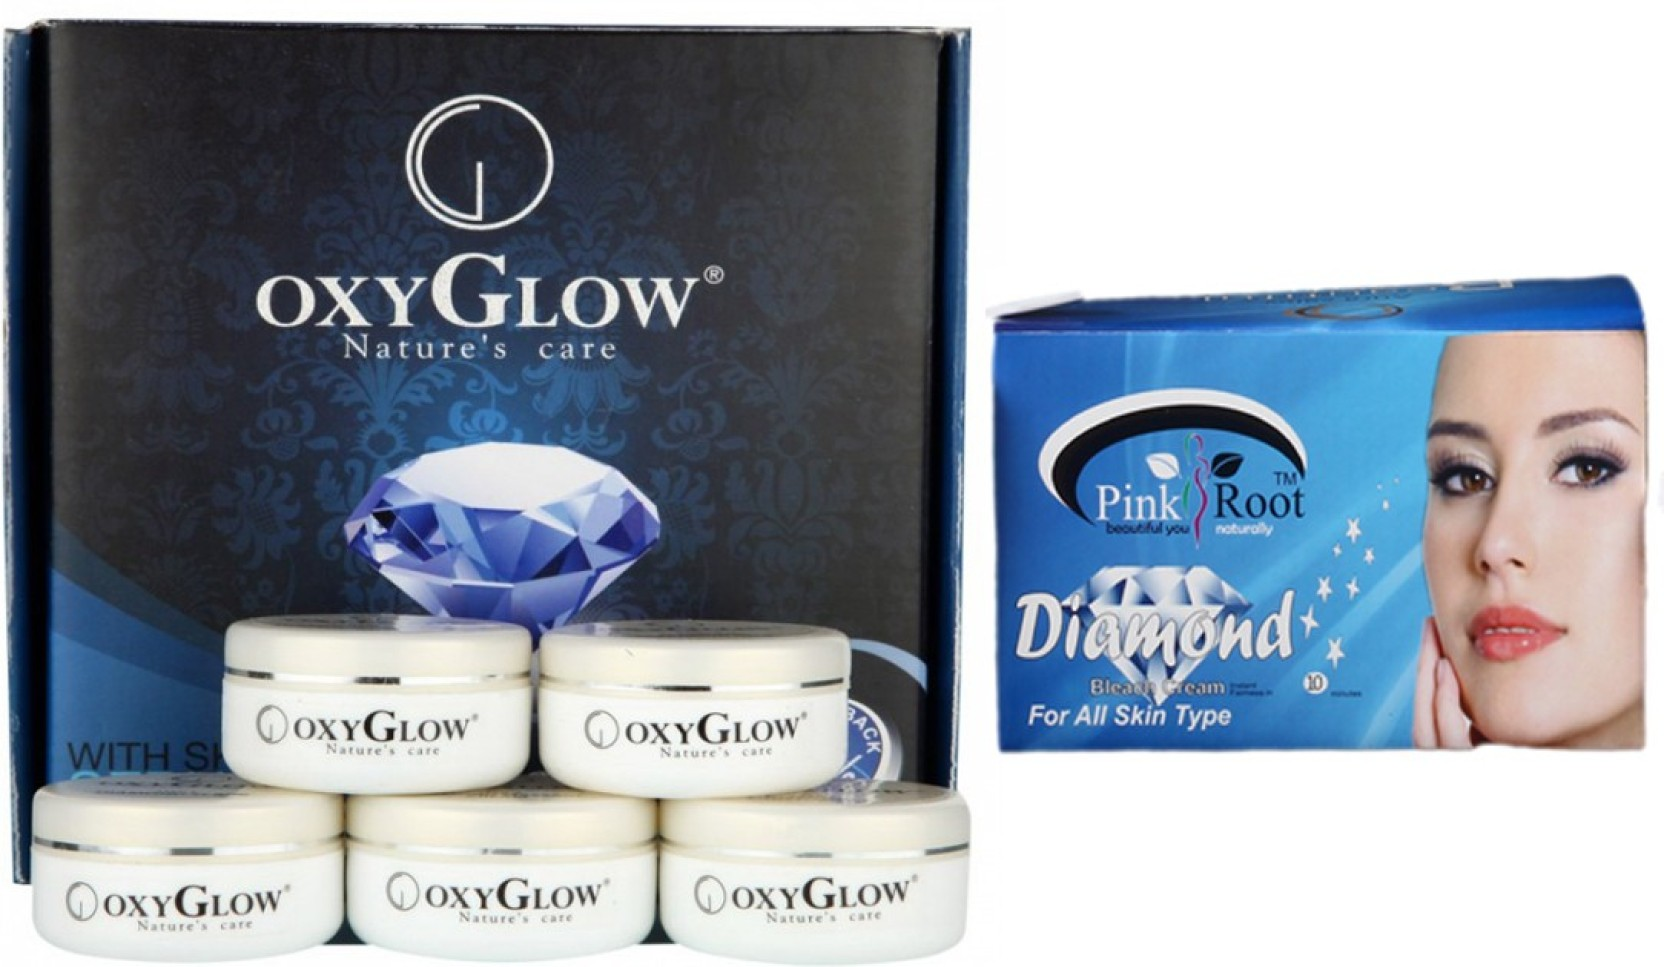 Oxyglow Diamond Facial Kit 165 Gm With Pink Root Bleach 250 Walet Black Soap Original Box Share